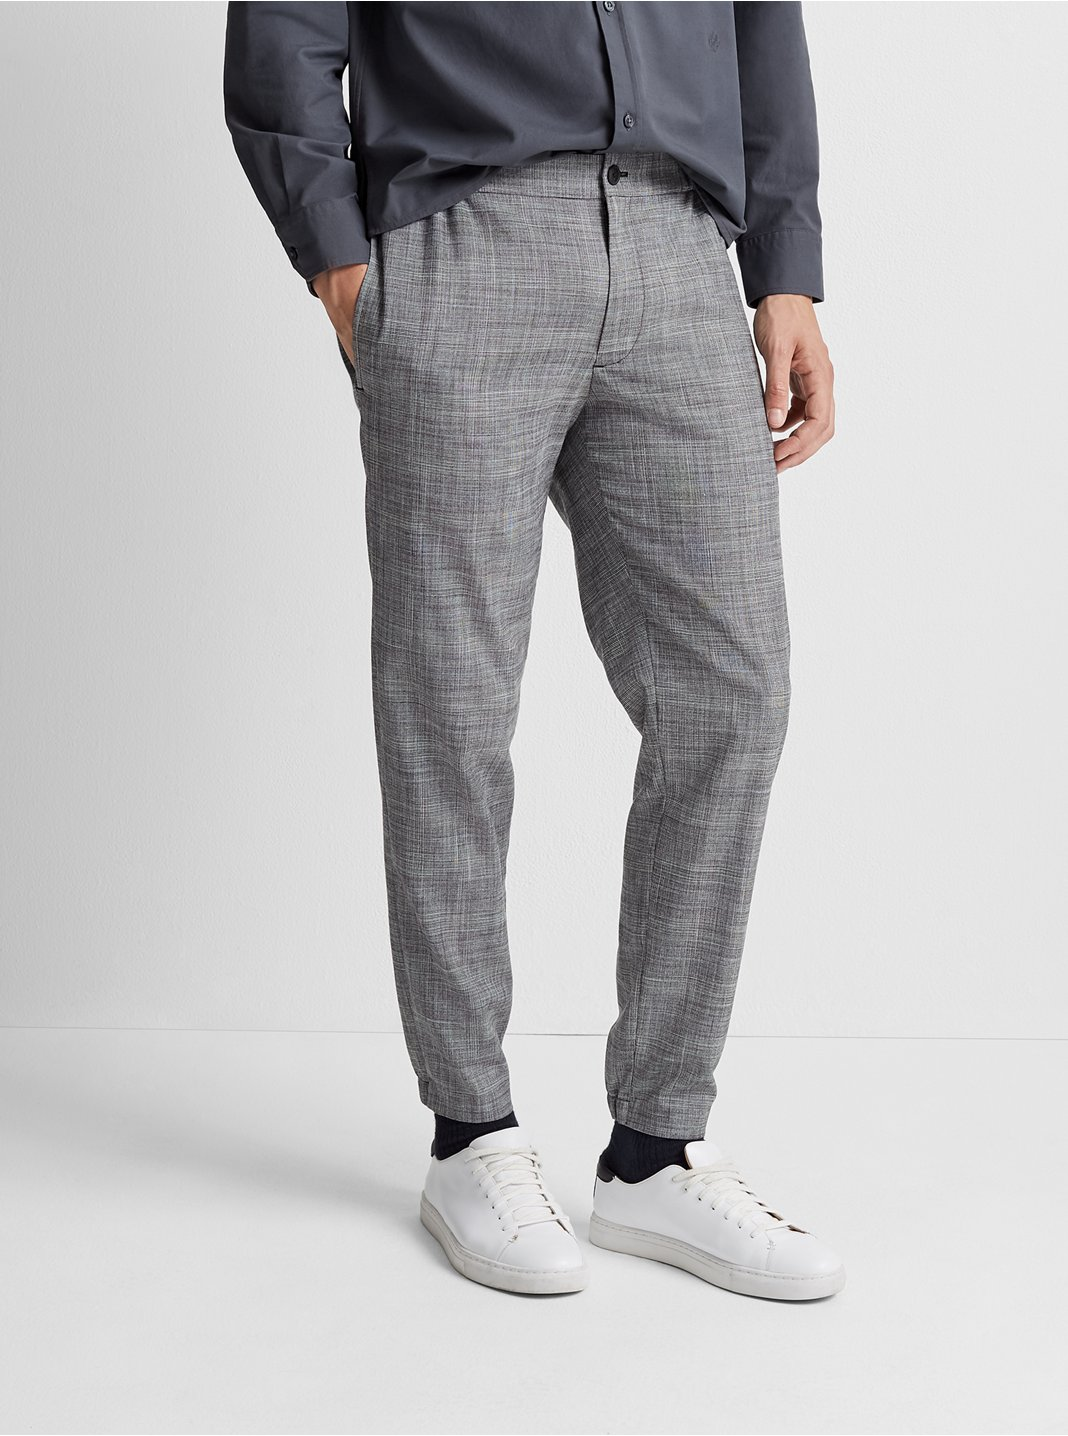 Lex Glen Plaid Trouser